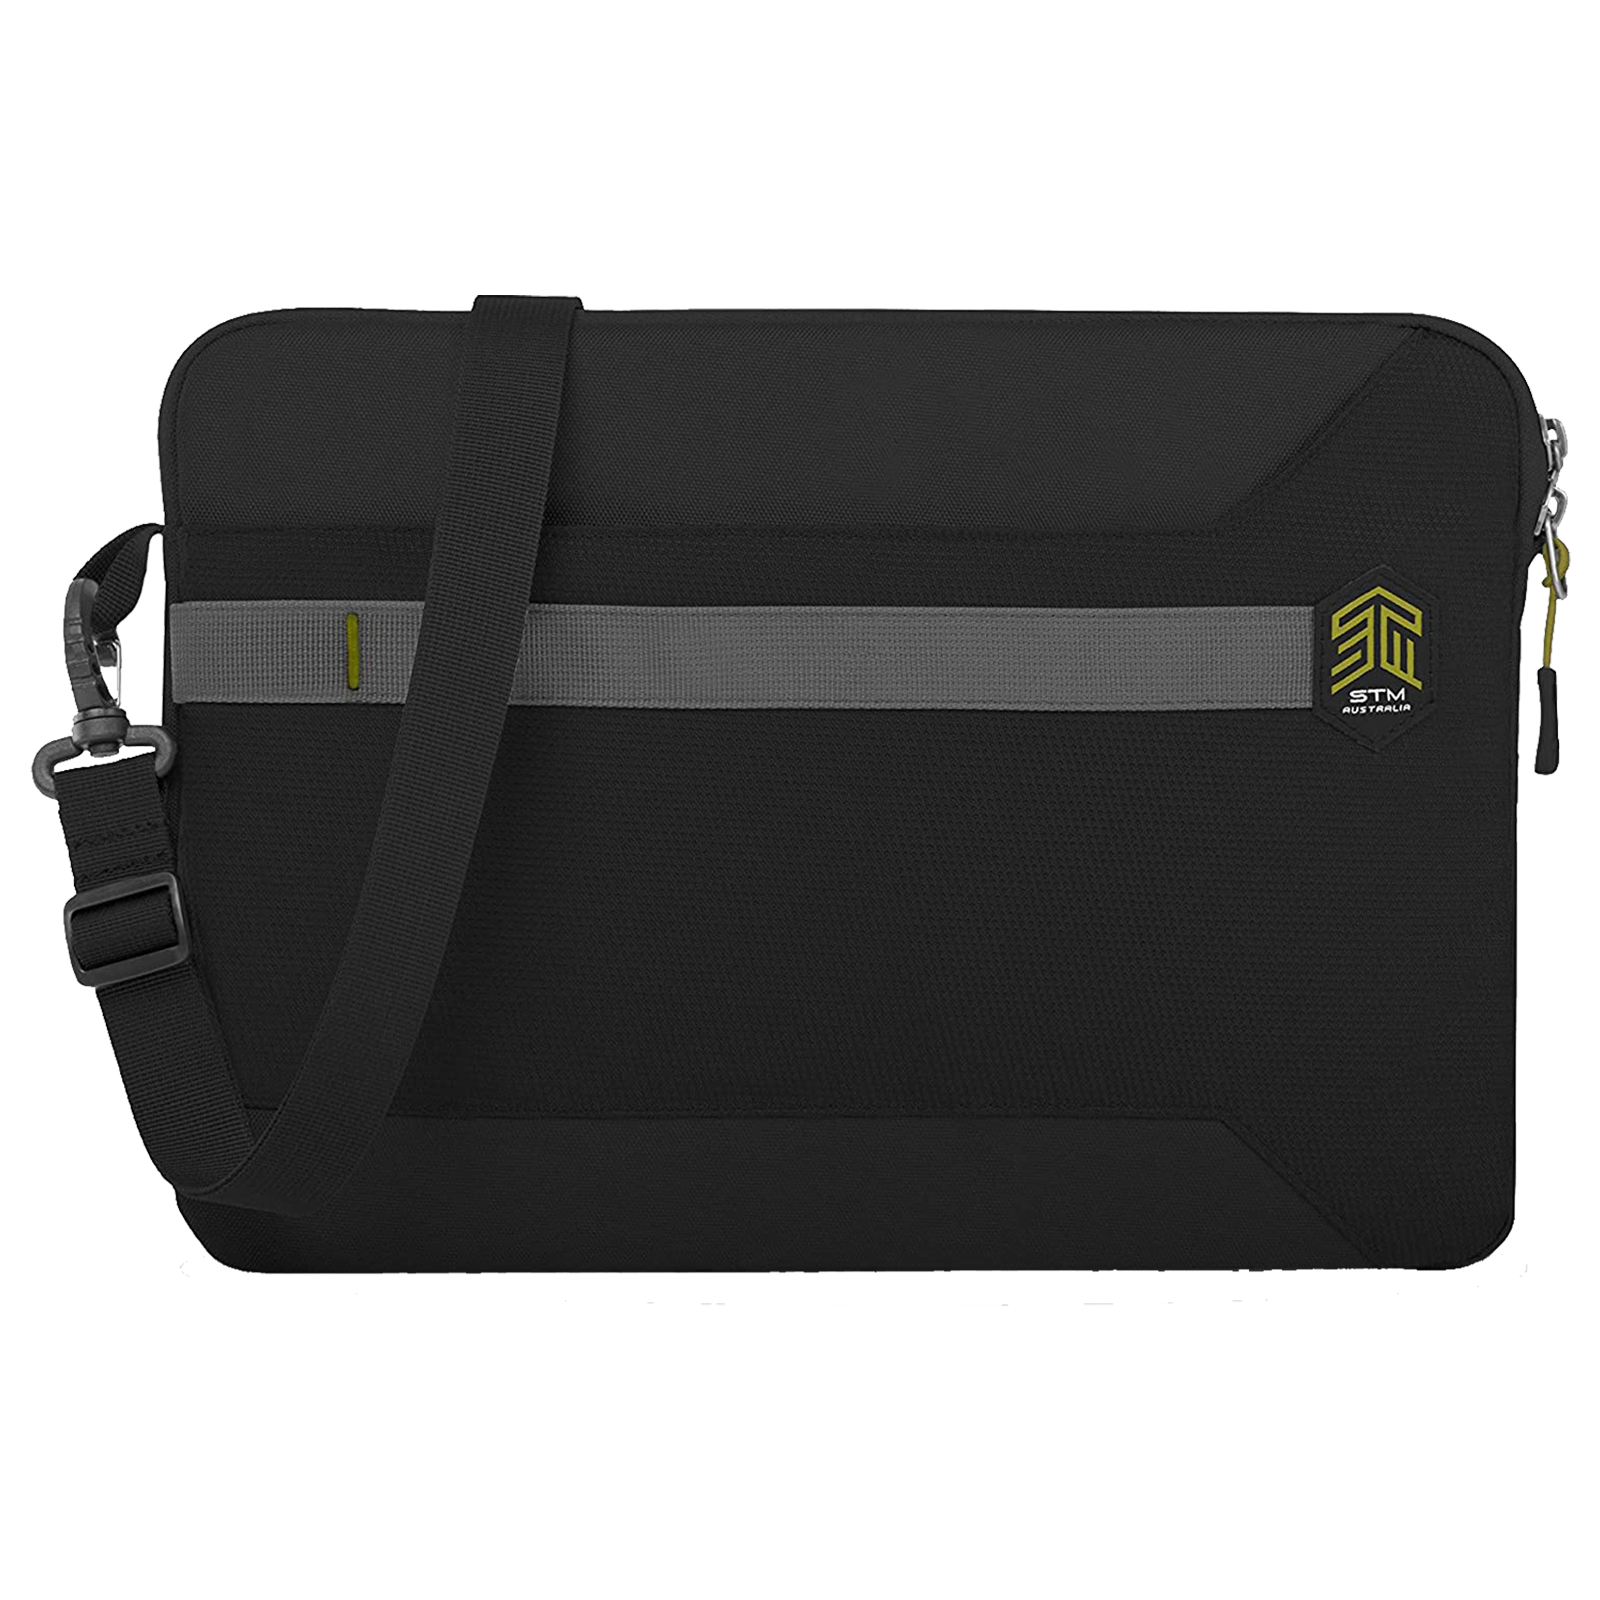 STM Blazer Litres Polyester Sleeve for 15 Inch Laptop (Water Resistant Fabric, STM-114-191P-01, Black)_1